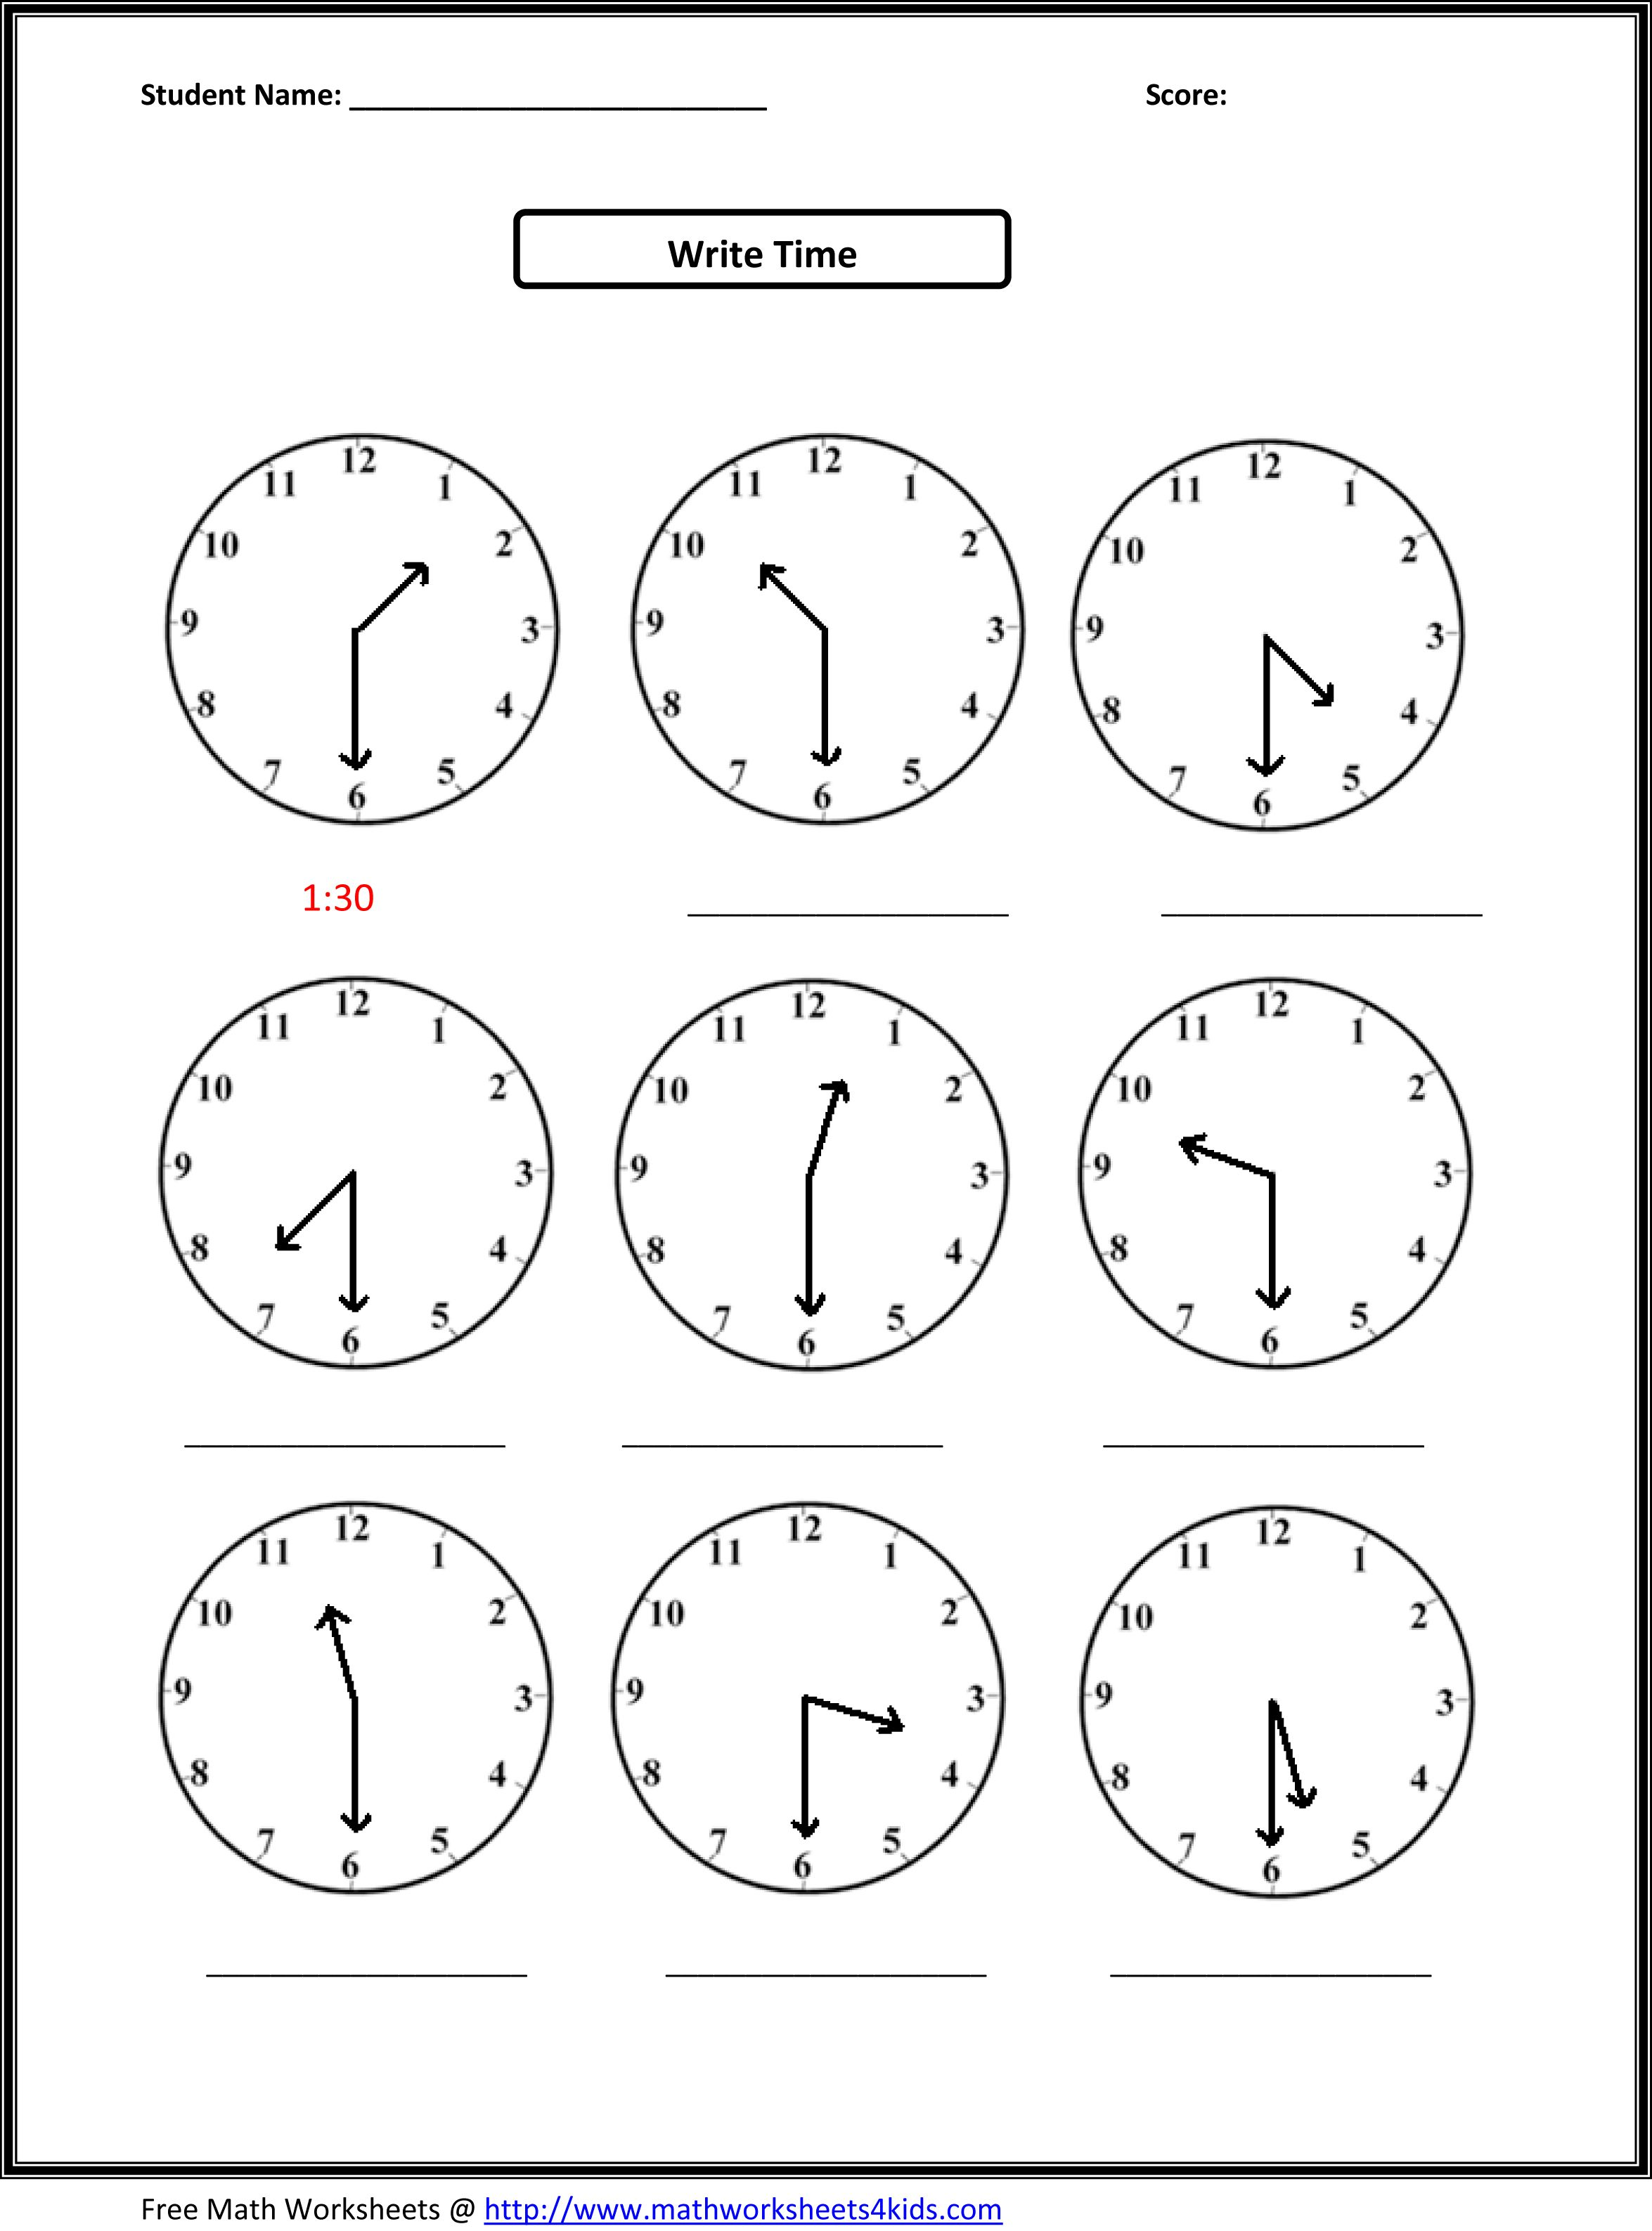 Proatmealus  Scenic Worksheet On Time For Grade   Reocurent With Fascinating Free Printable Telling Time Worksheets Nd Grade  Reocurent With Beauteous Color Math Worksheets Also How To Merge Worksheets In Excel In Addition Integumentary System Worksheet Answers And Prime And Composite Worksheet As Well As Esol Worksheets Additionally Monomials Worksheet From Reocurentcom With Proatmealus  Fascinating Worksheet On Time For Grade   Reocurent With Beauteous Free Printable Telling Time Worksheets Nd Grade  Reocurent And Scenic Color Math Worksheets Also How To Merge Worksheets In Excel In Addition Integumentary System Worksheet Answers From Reocurentcom